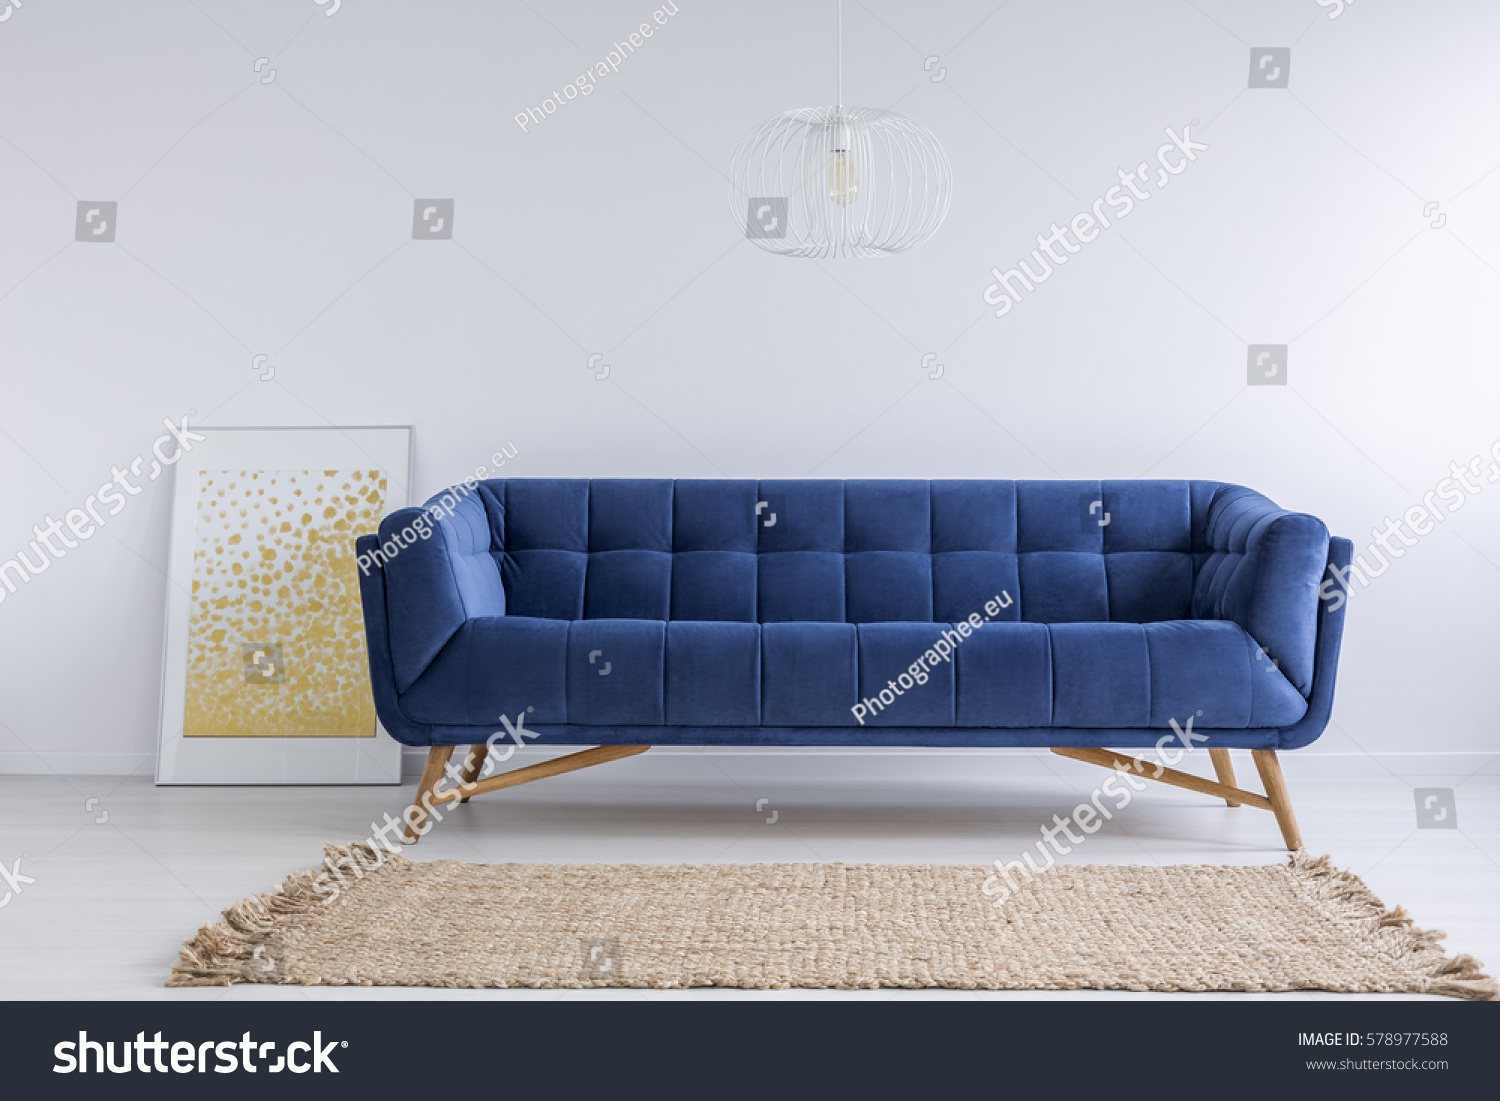 white and blue sofa fabric sofas simple room rug stock photo 578977588